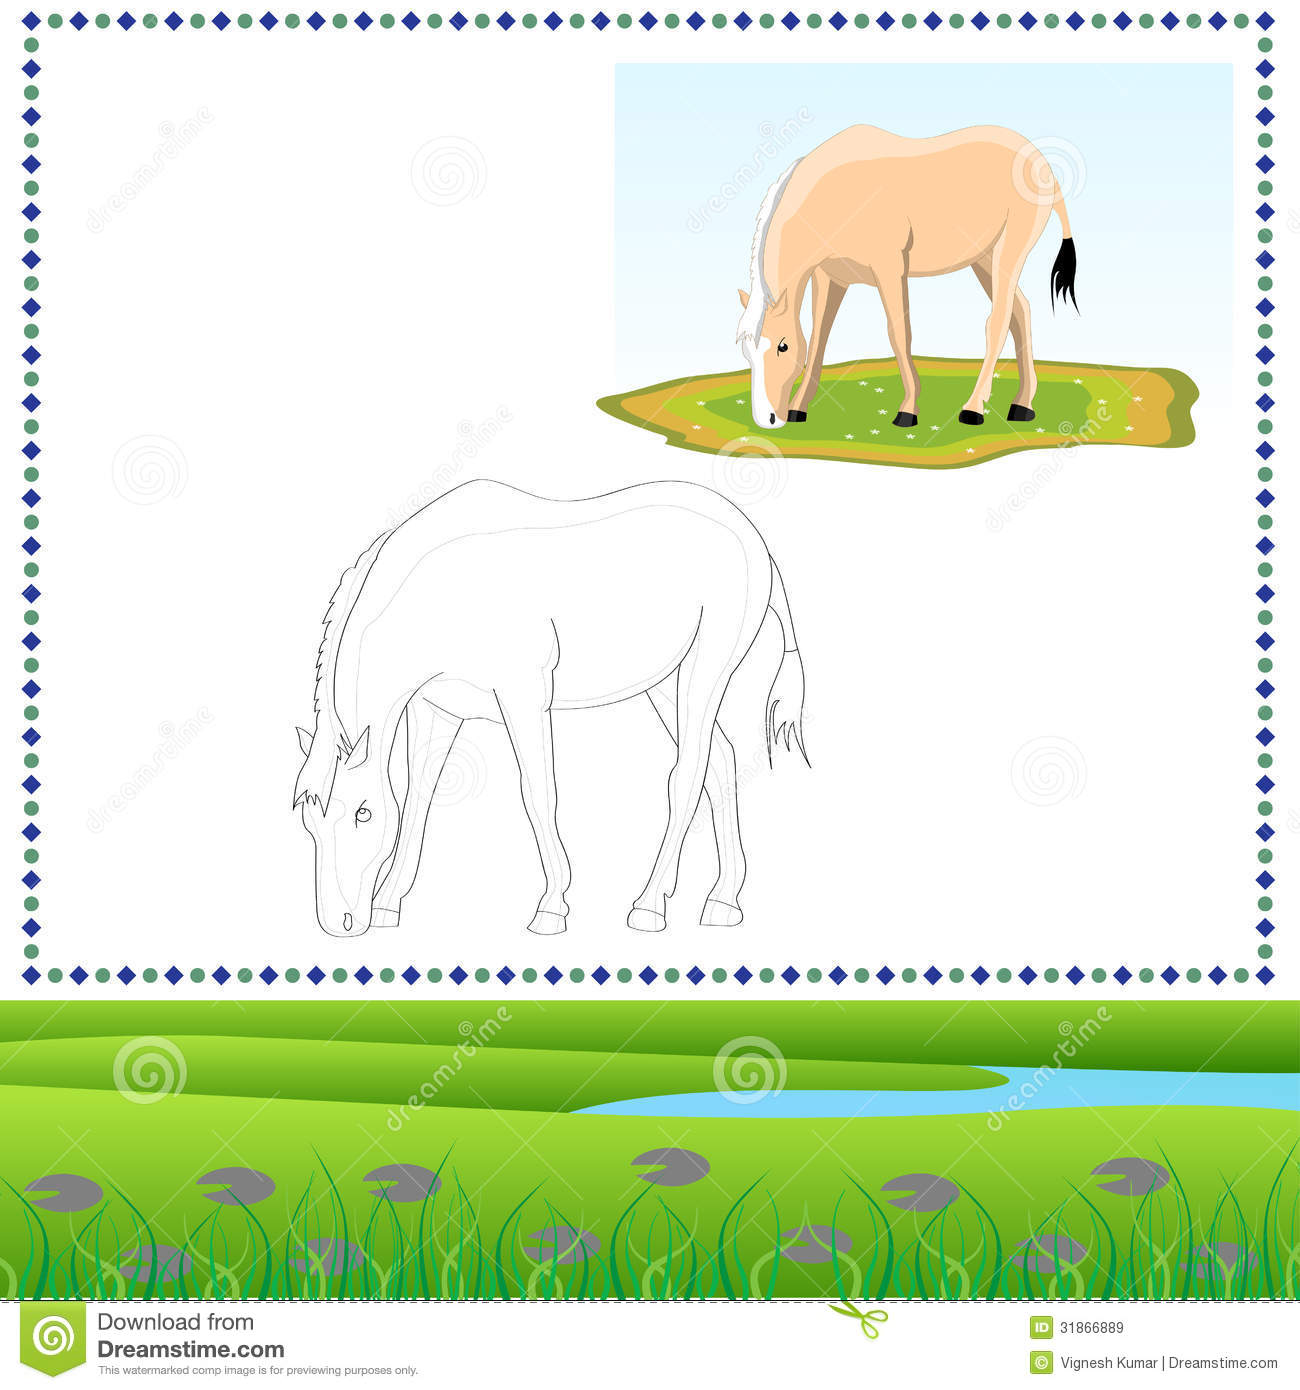 Coloring Horse stock image. Image of animal, foot, farm - 31866889